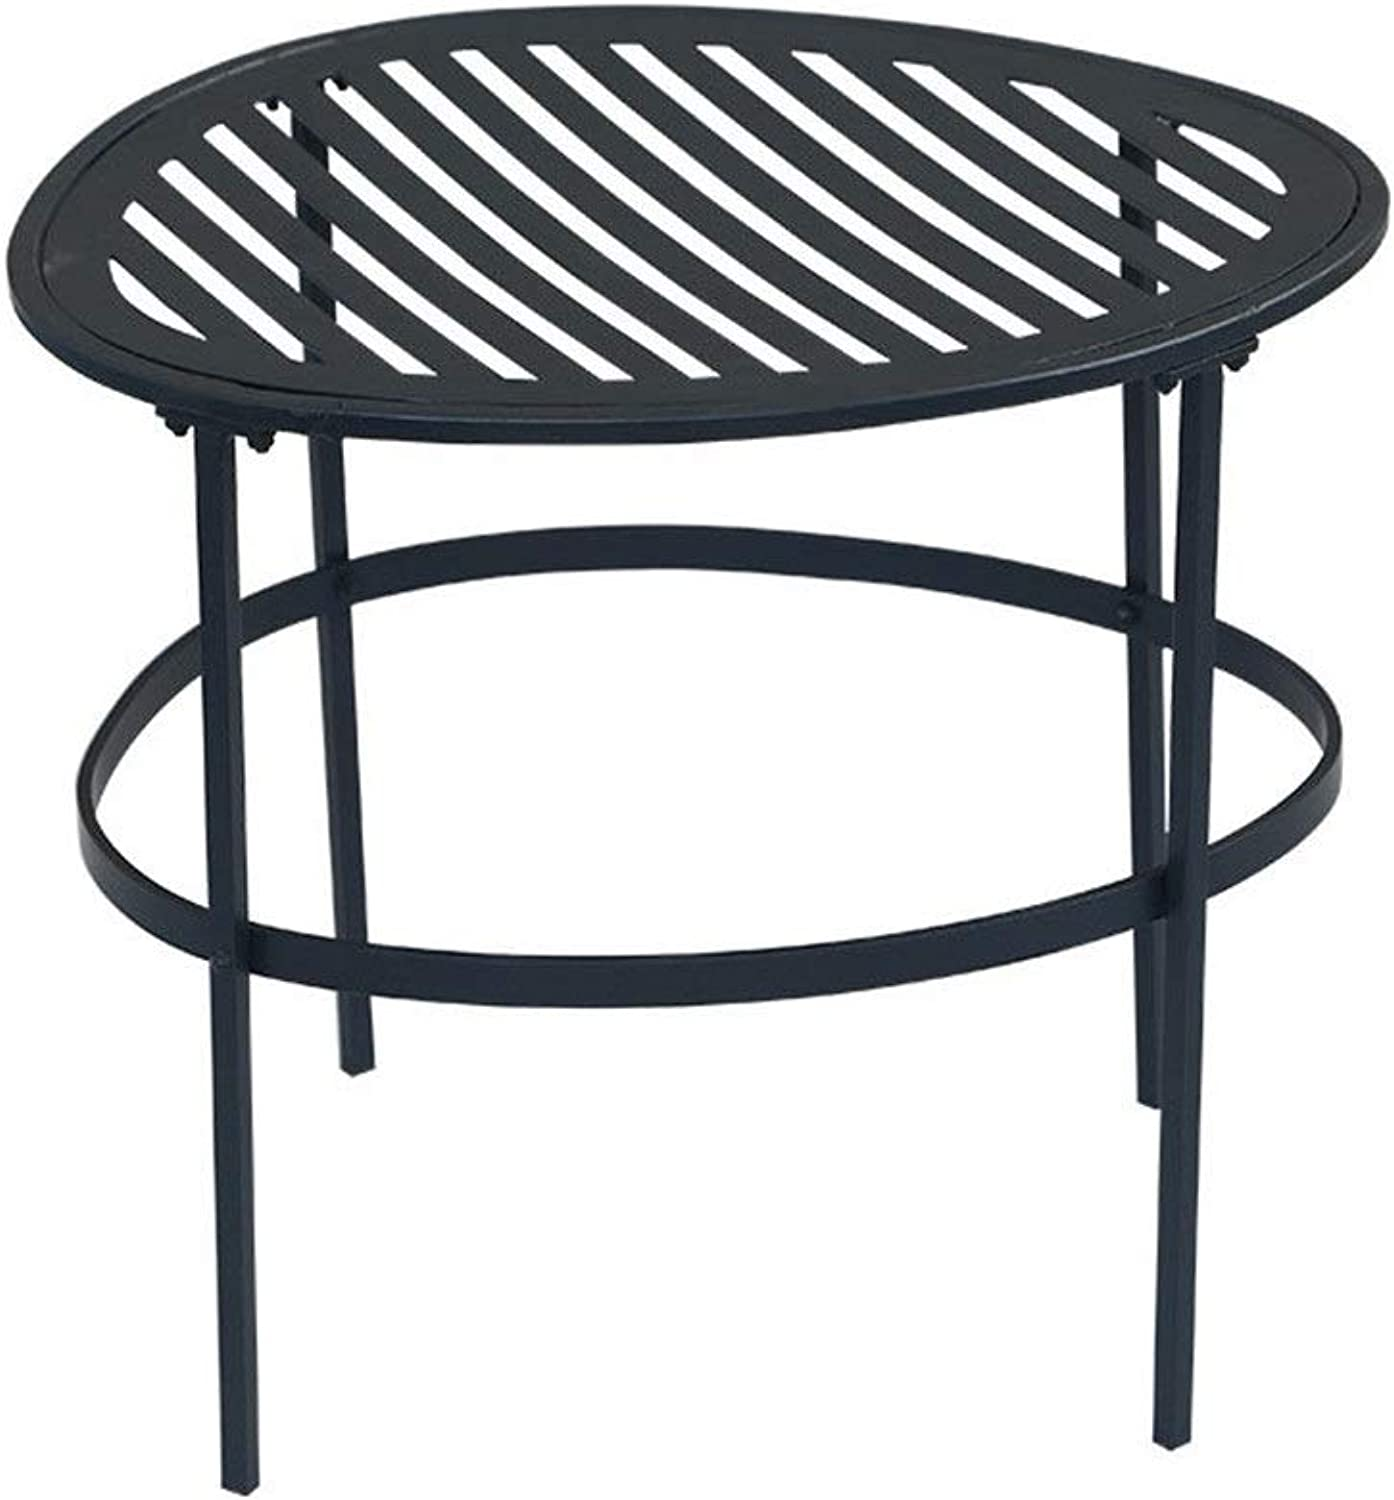 Coffee Table Living Room Balcony Home Modern Black Small Wire Side Table Metal Coffee End Side Table Easy Assembly Multi-use Decor Indoor Modern Furniture Decor (Size   44  36  40cm)